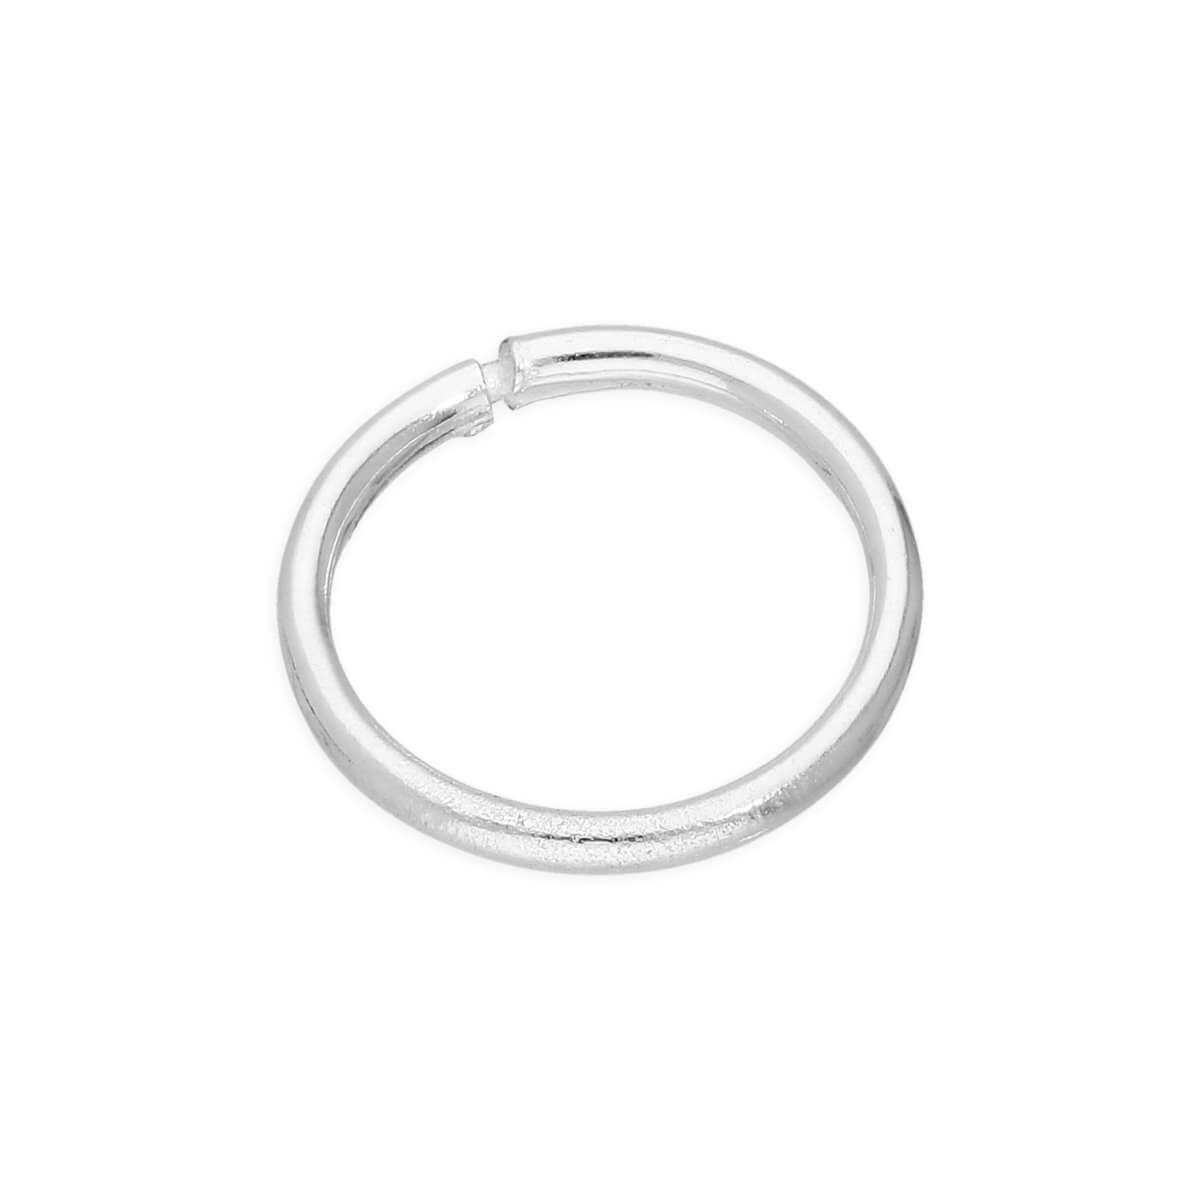 Single Sterling Silver Lightweight Sleeper 8mm Hoop Earring